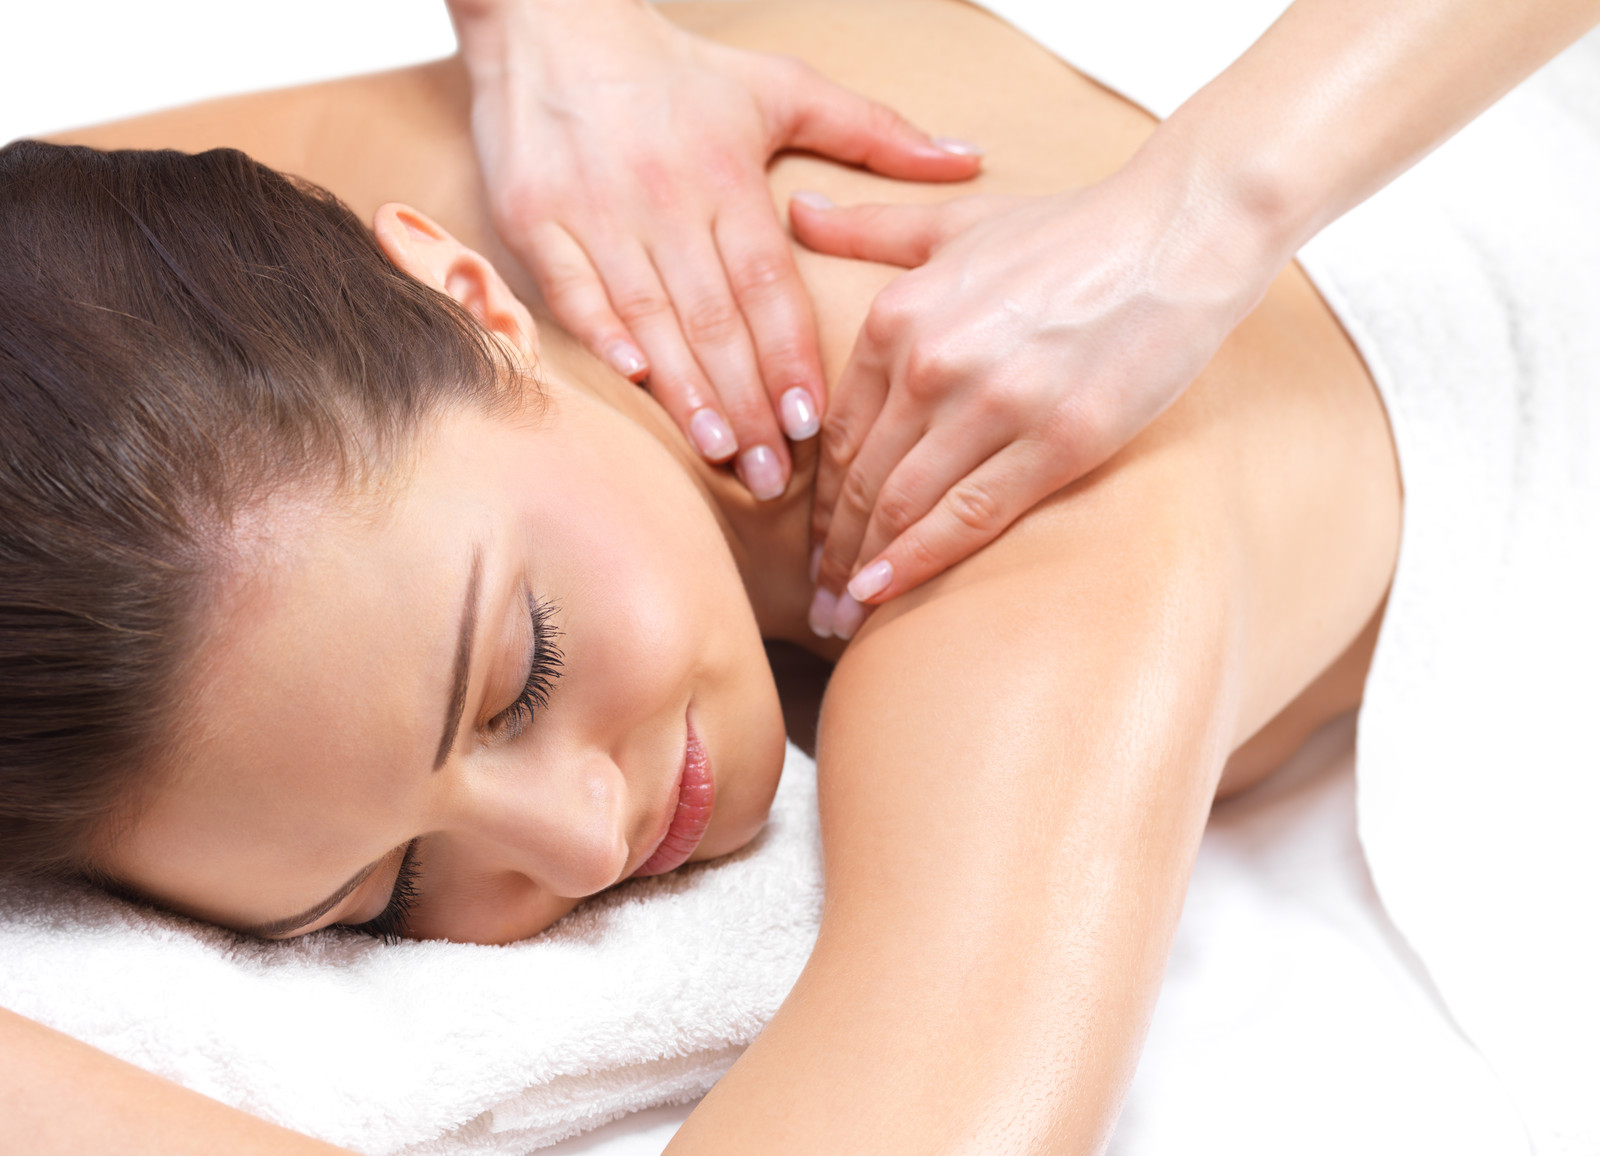 wellness glostrup massage solrød